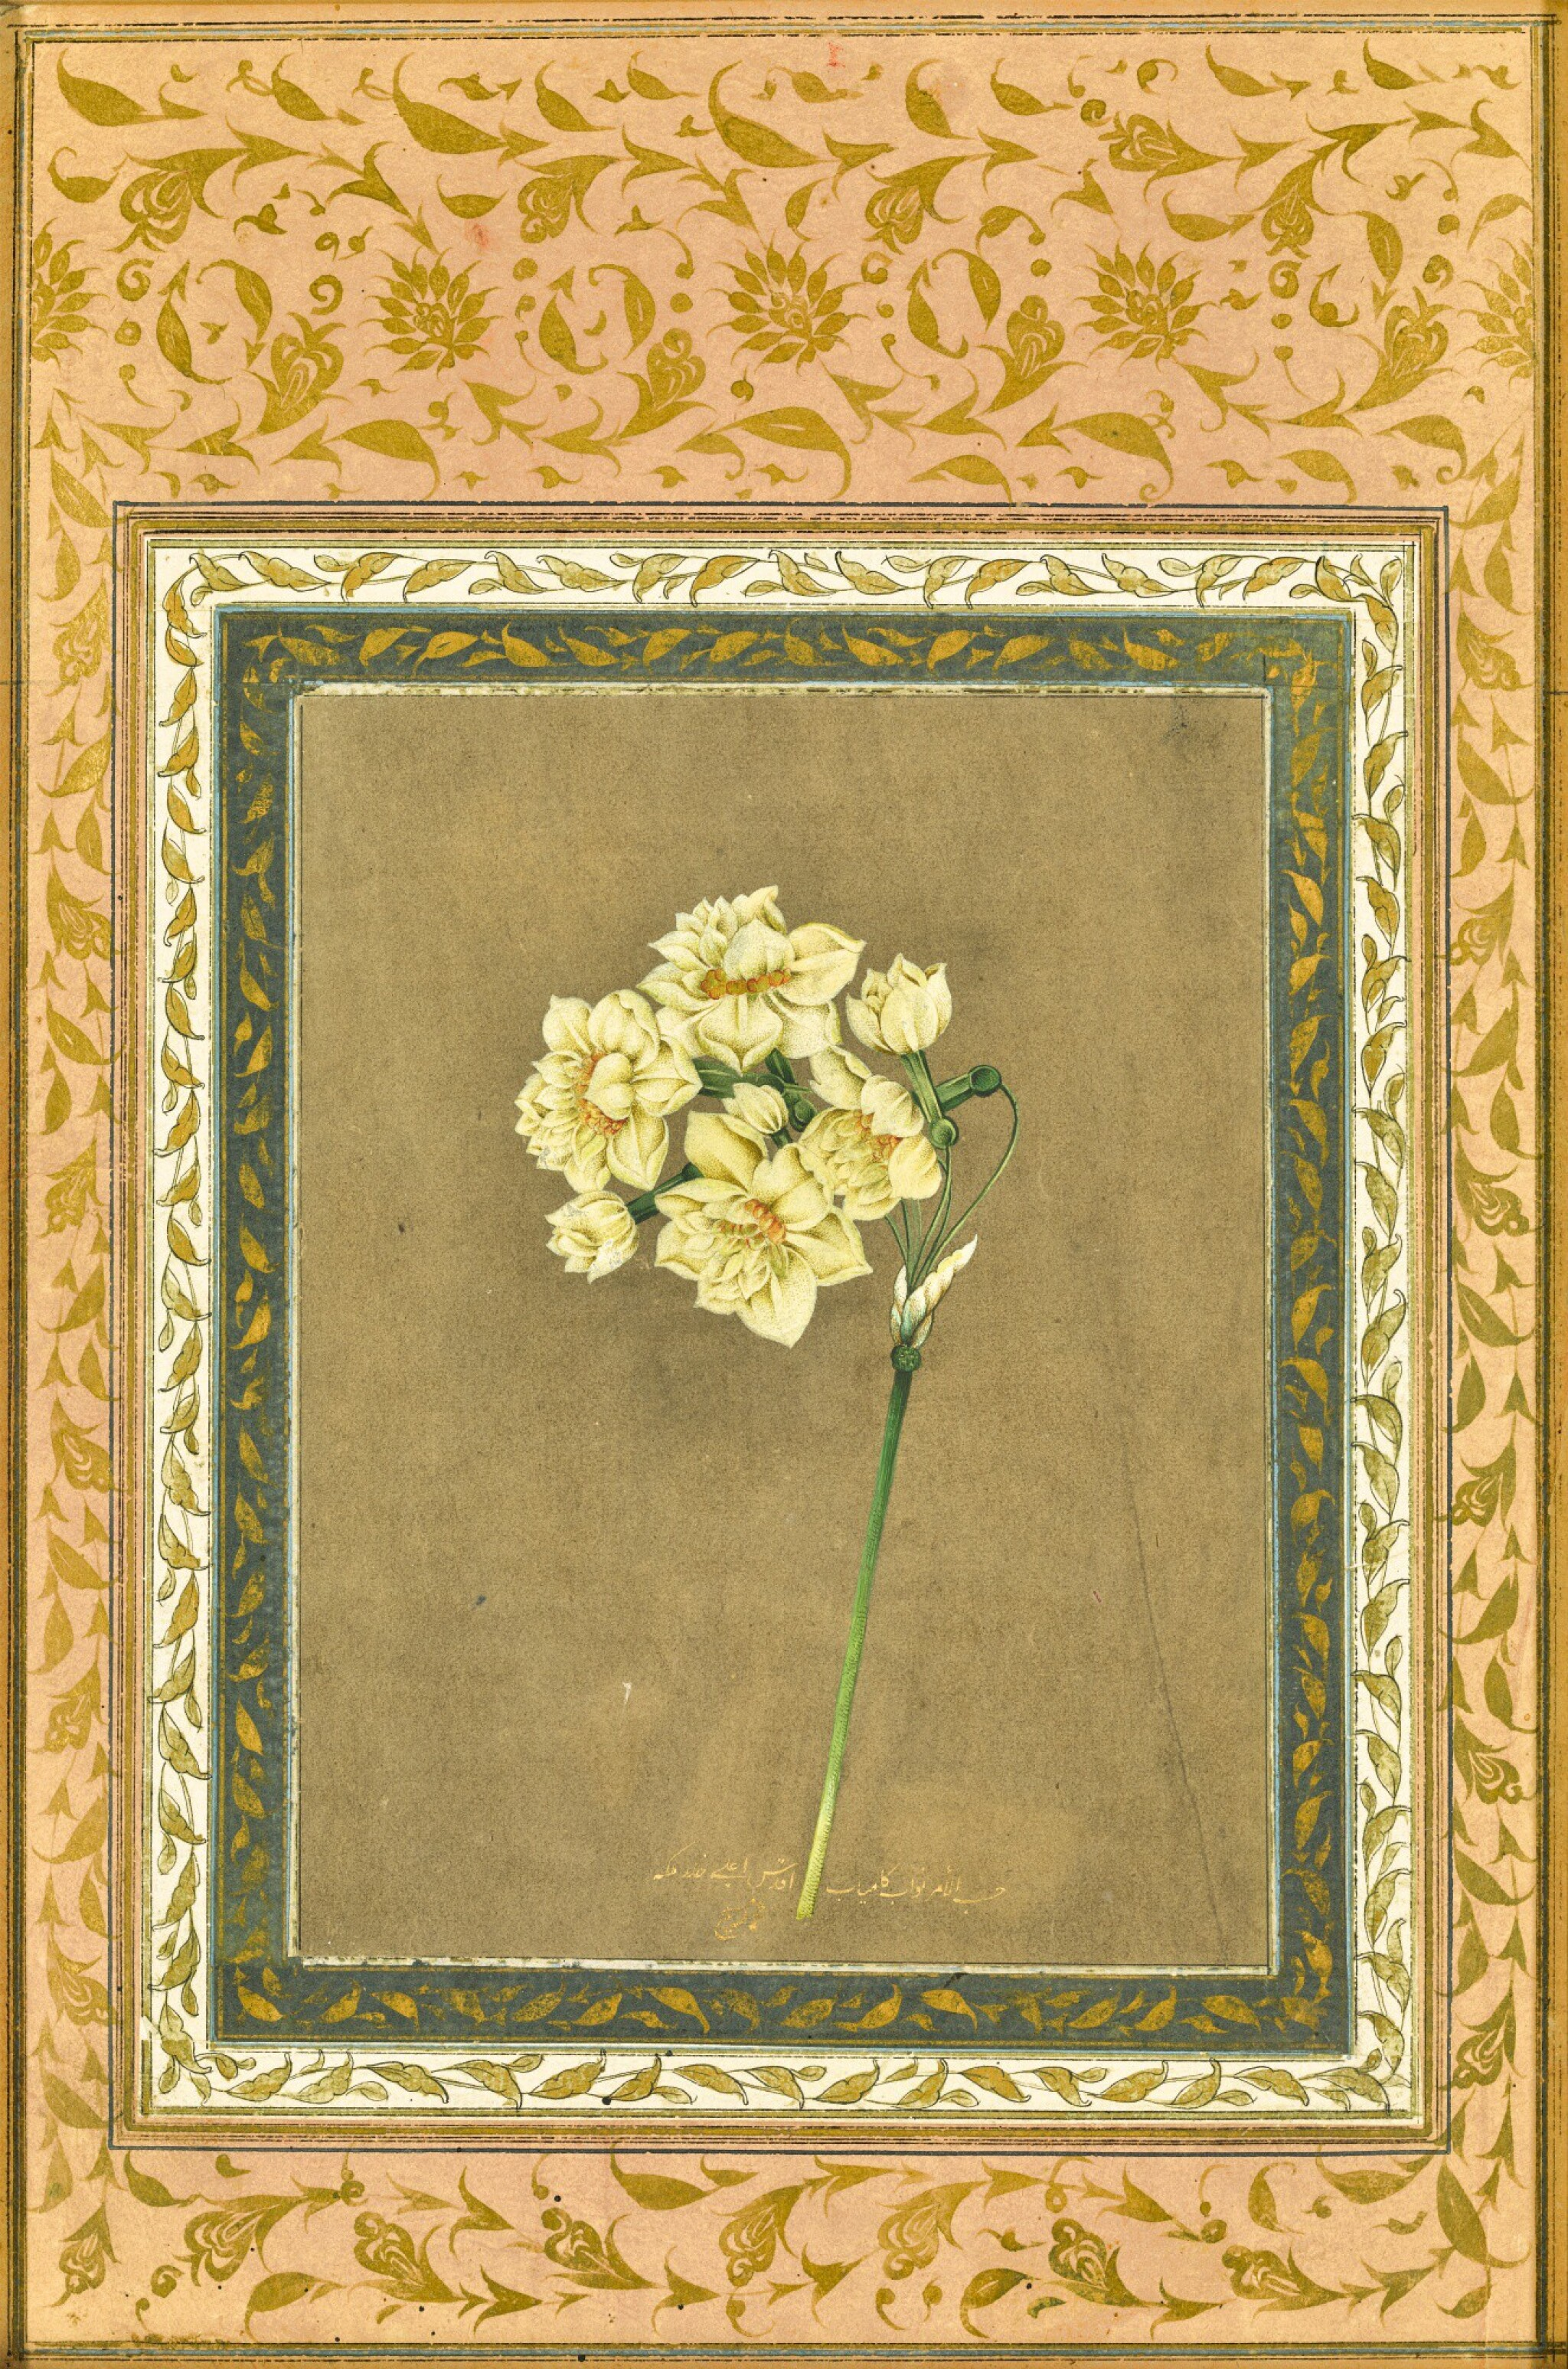 View full screen - View 1 of Lot 60. A NARCISSUS, BY MUHAMMAD MASIH, PERSIA, SAFAVID, EARLY 18TH CENTURY.